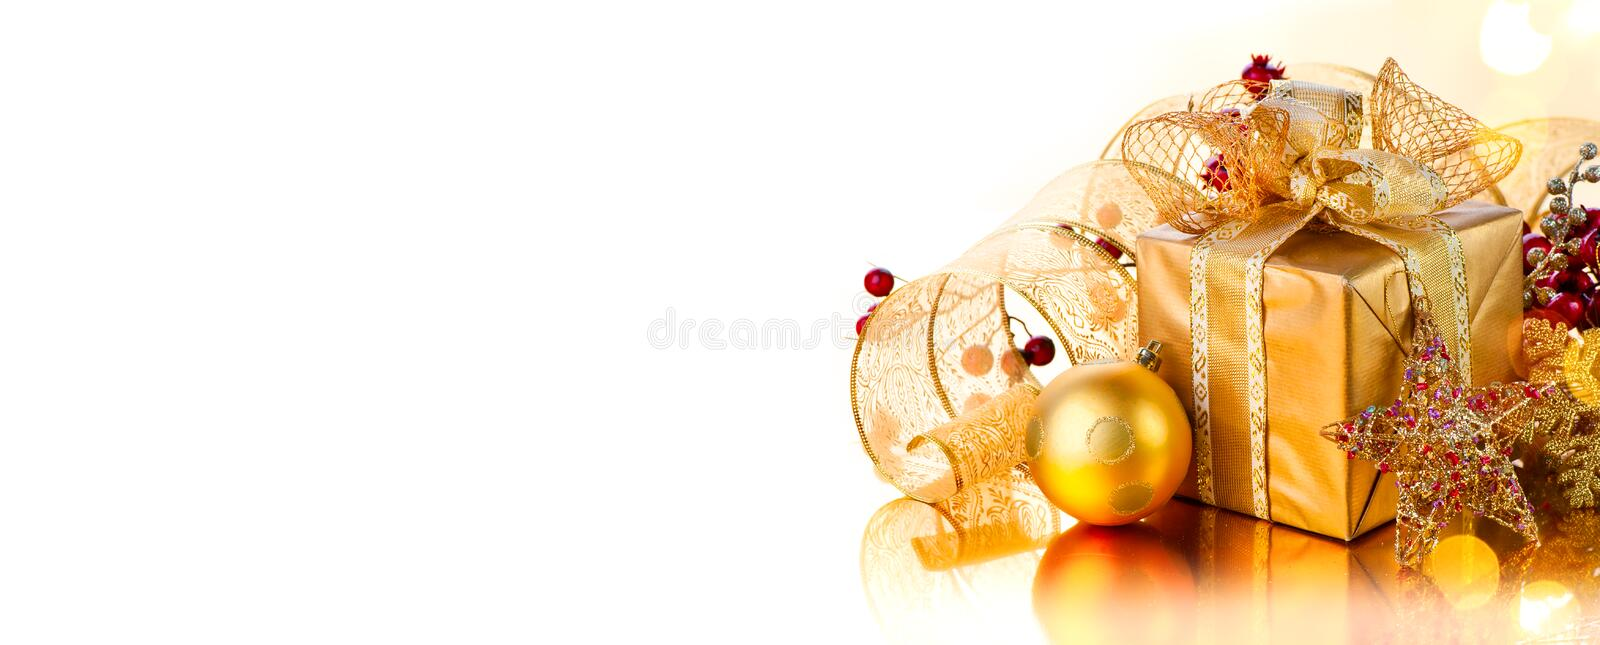 Christmas Gift box with baubles. Beautiful New Year decorated golden gift, border design, isolated on white background royalty free stock image